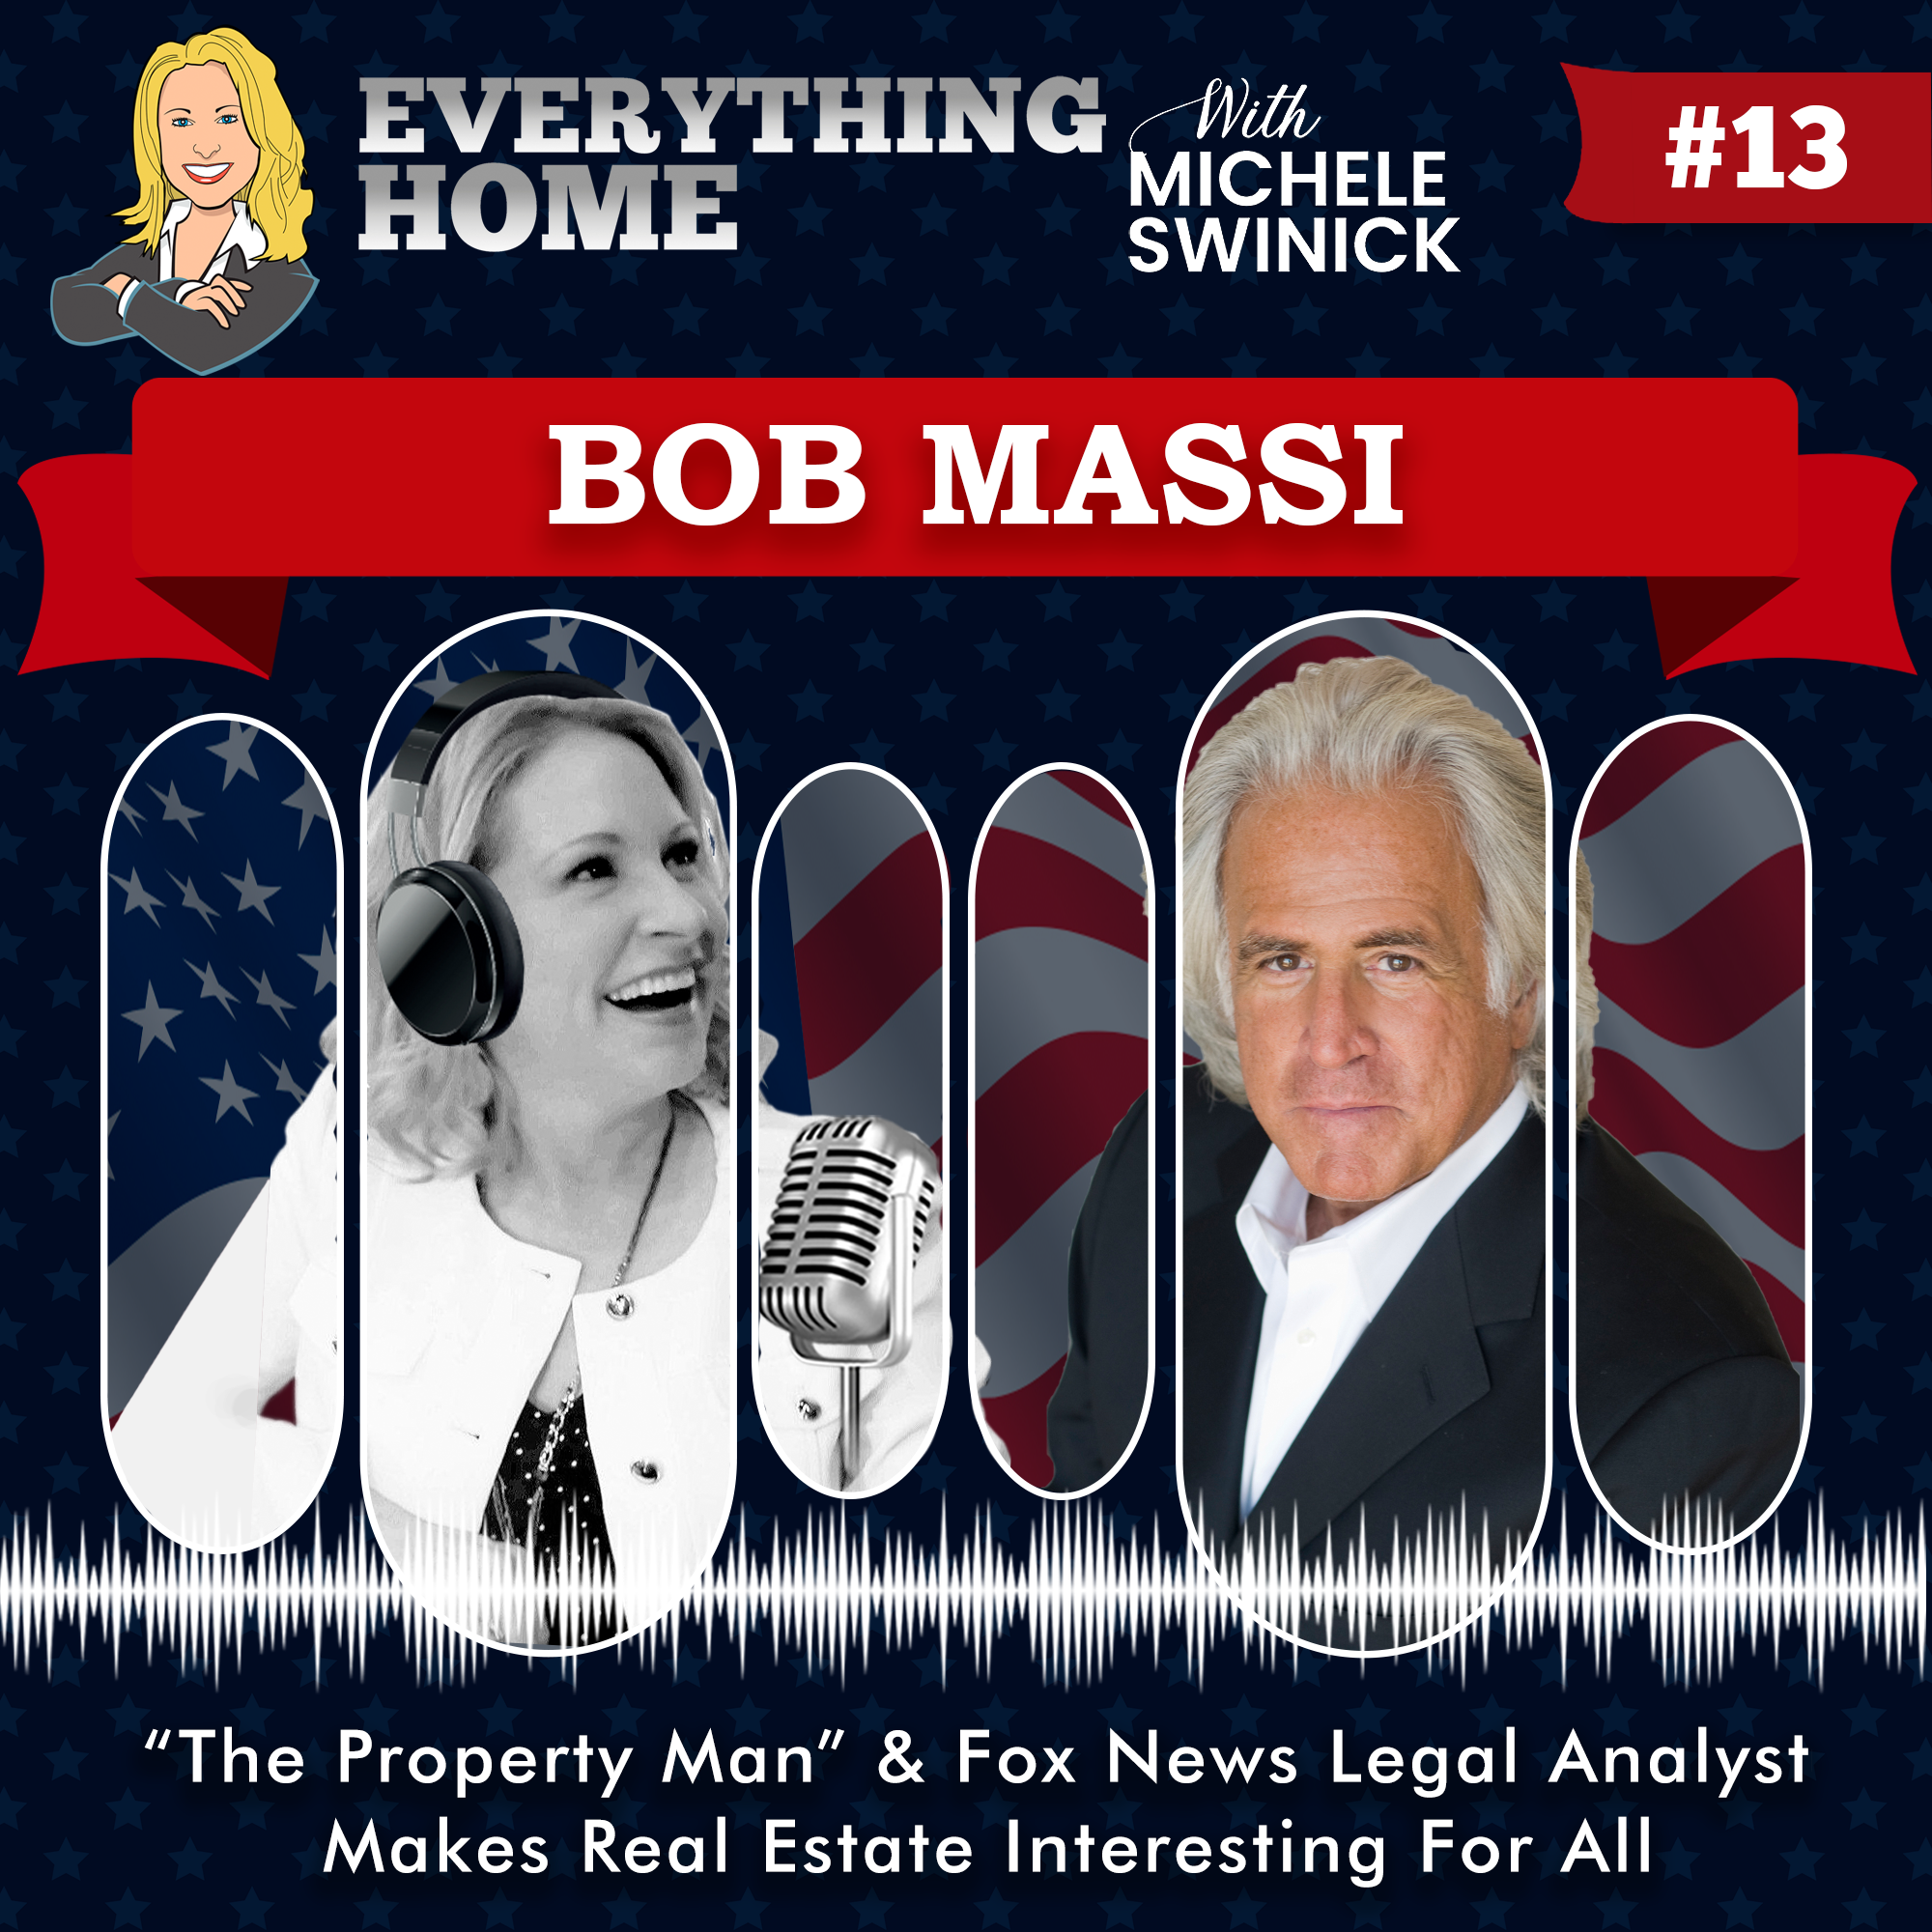 BOB MASSI WAVEFORM #13